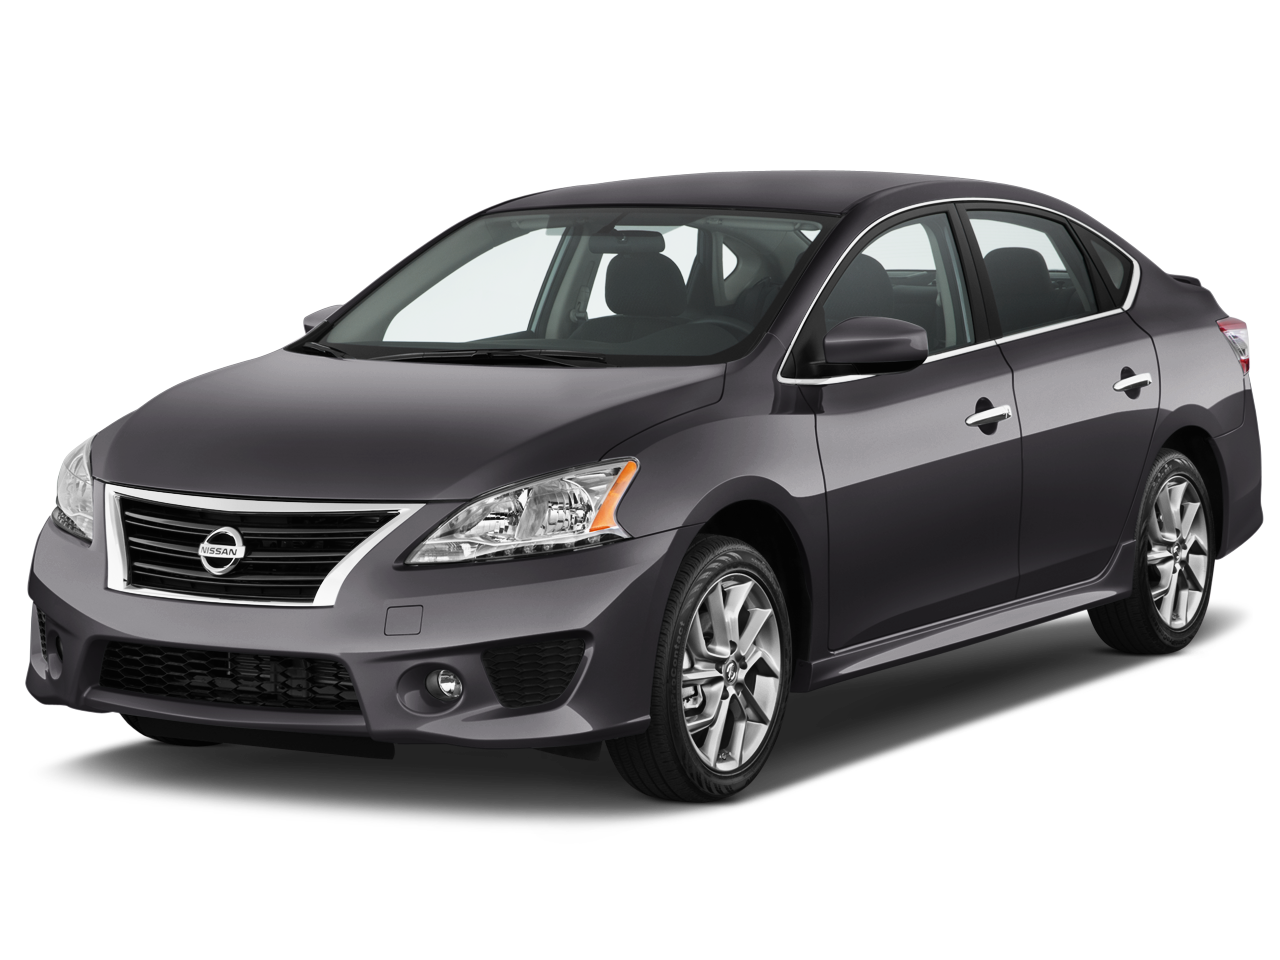 used 2014 nissan sentra s near woburn ma woburn toyota. Black Bedroom Furniture Sets. Home Design Ideas